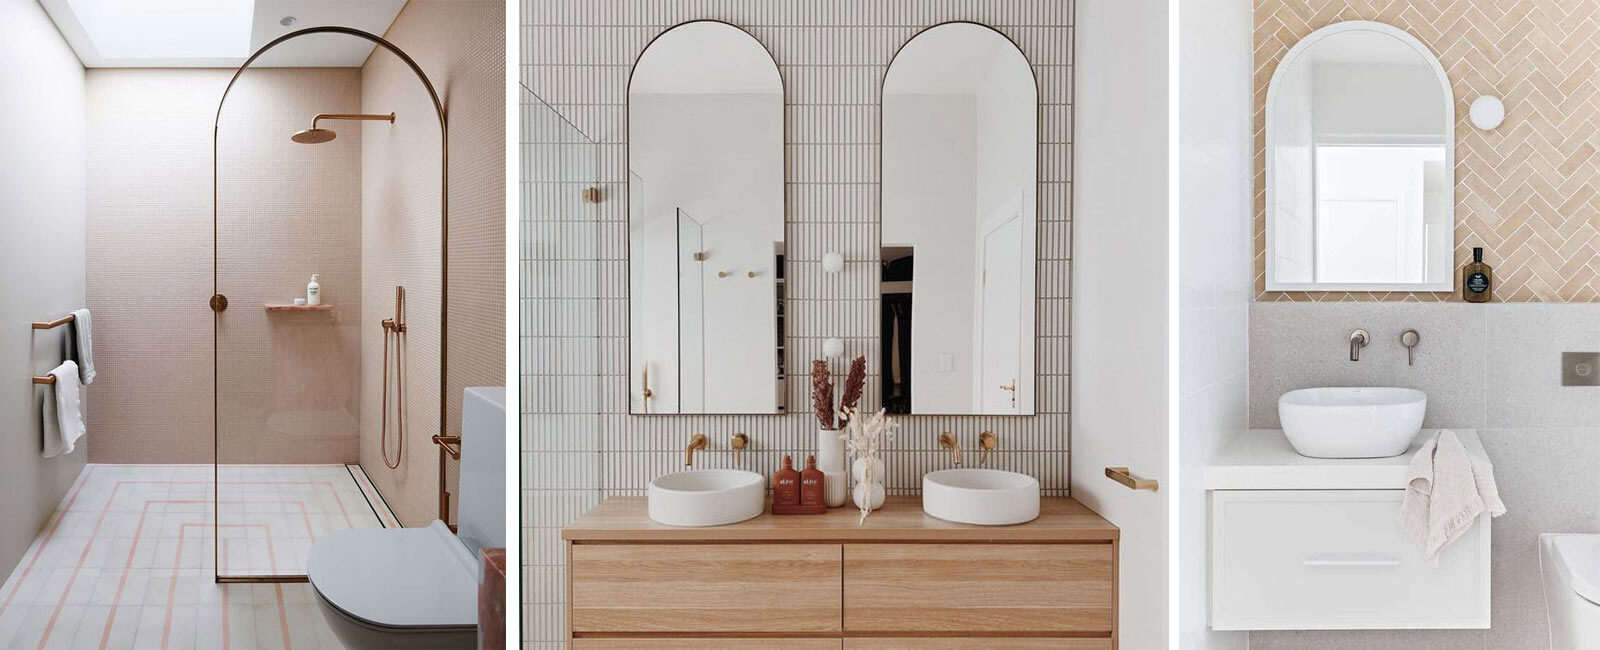 Bathroom trends 2021: arches